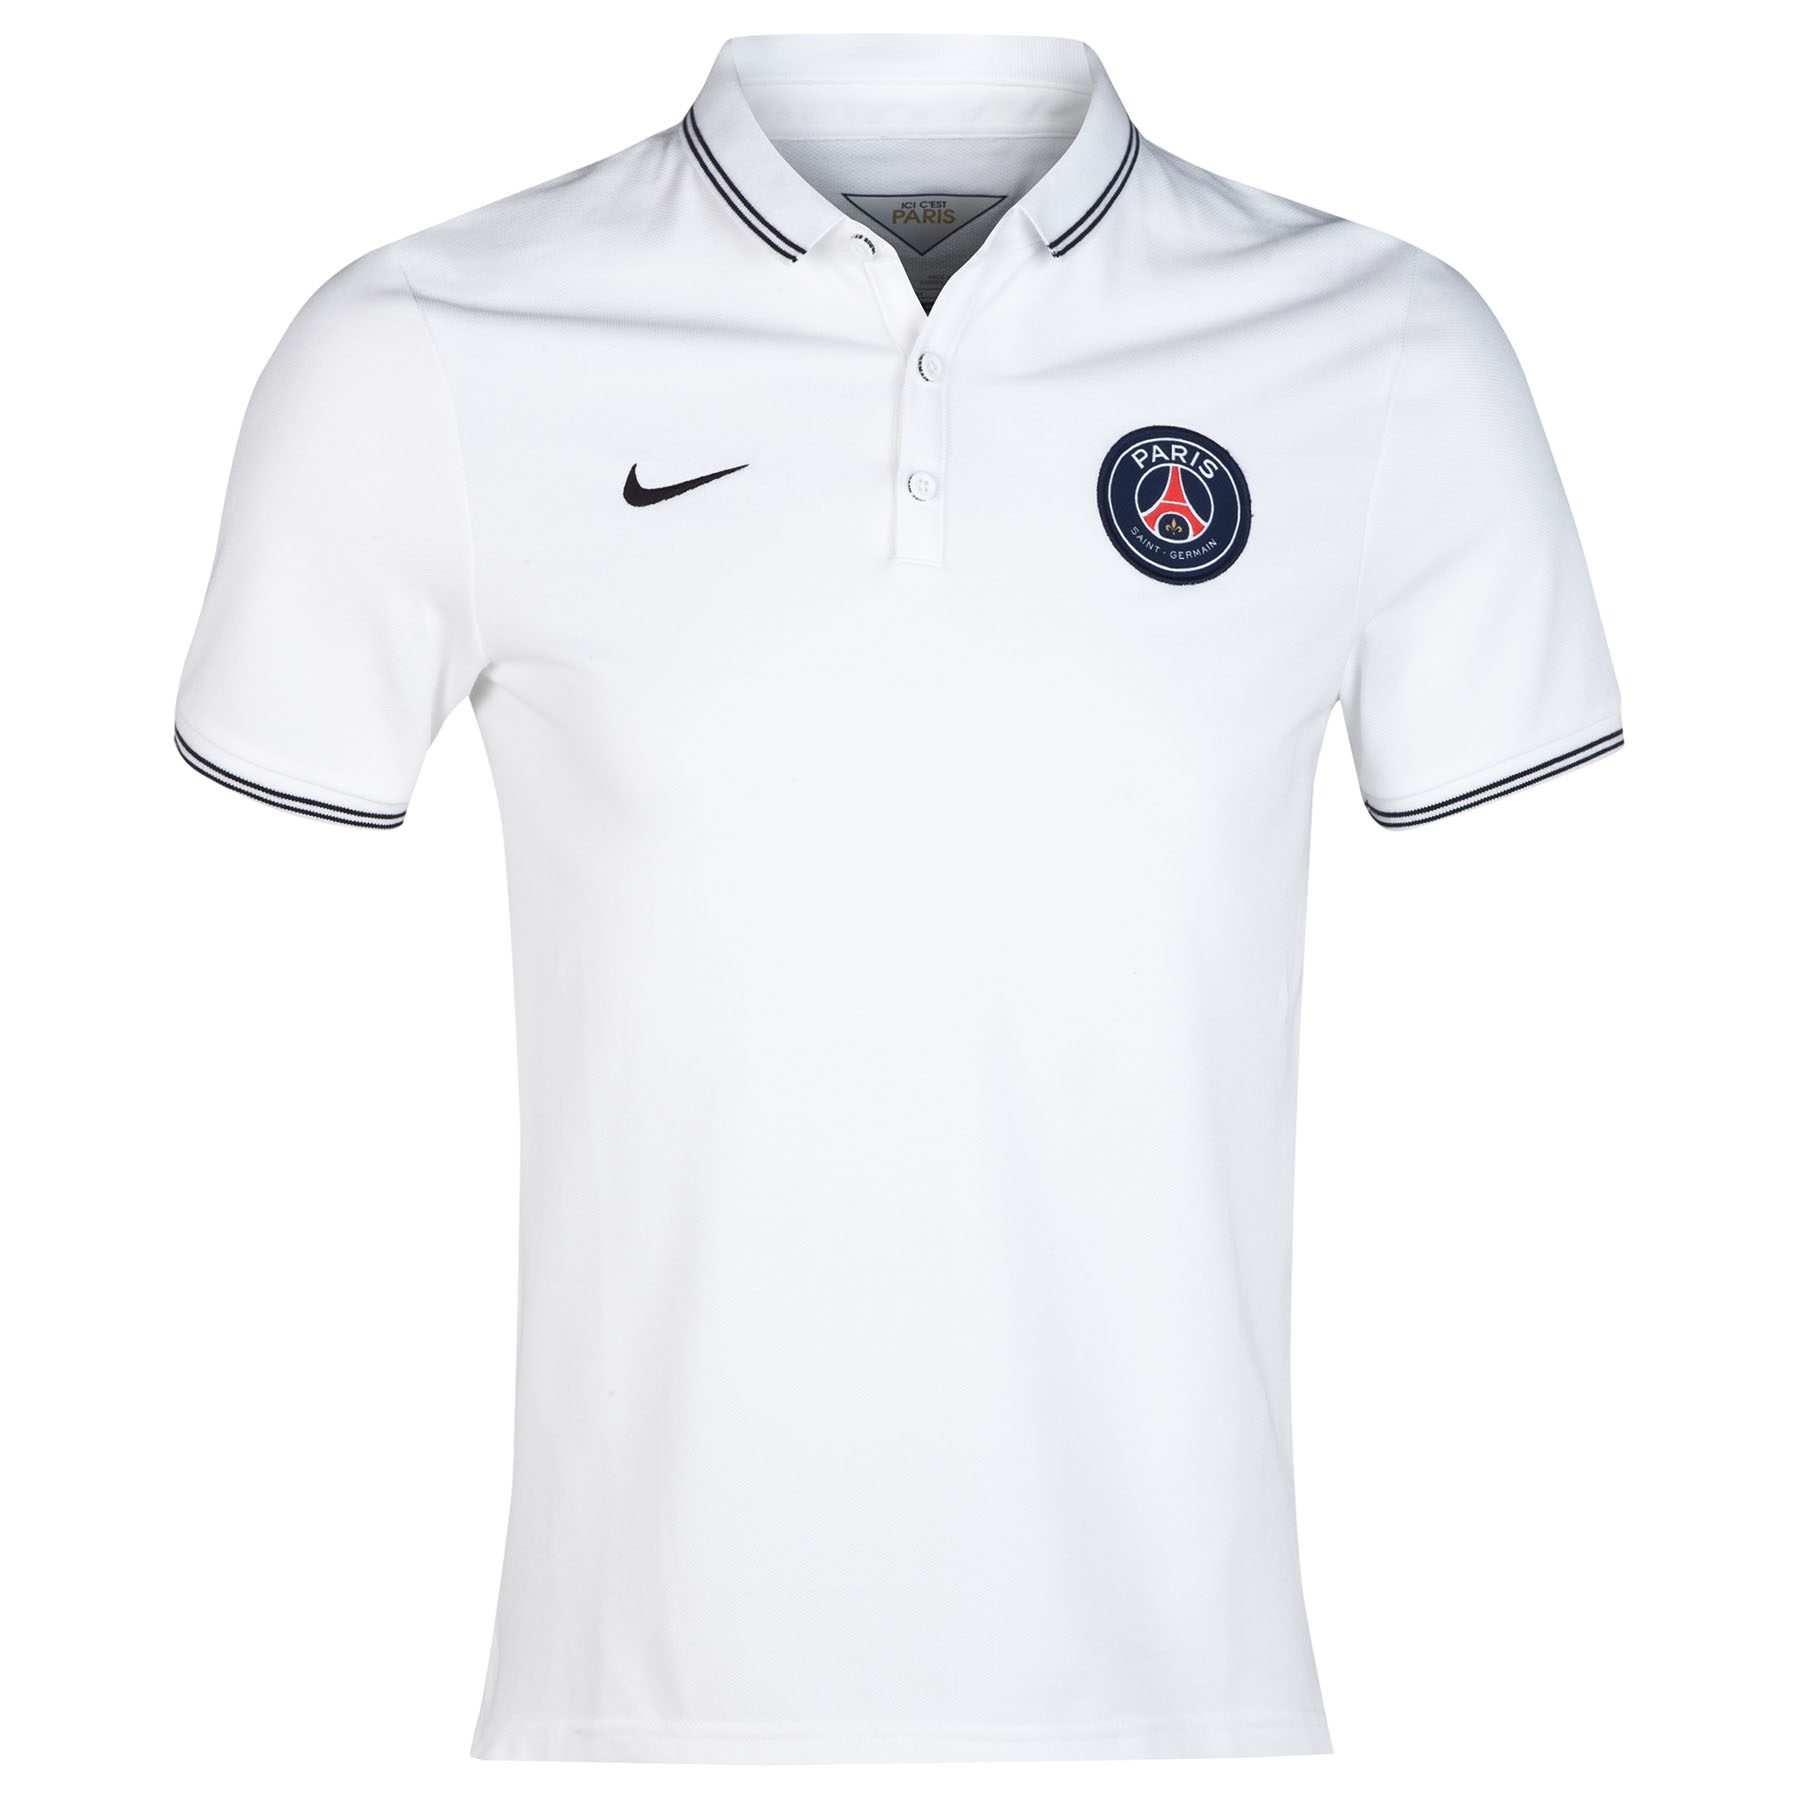 Paris Saint-Germain League Authentic Polo White